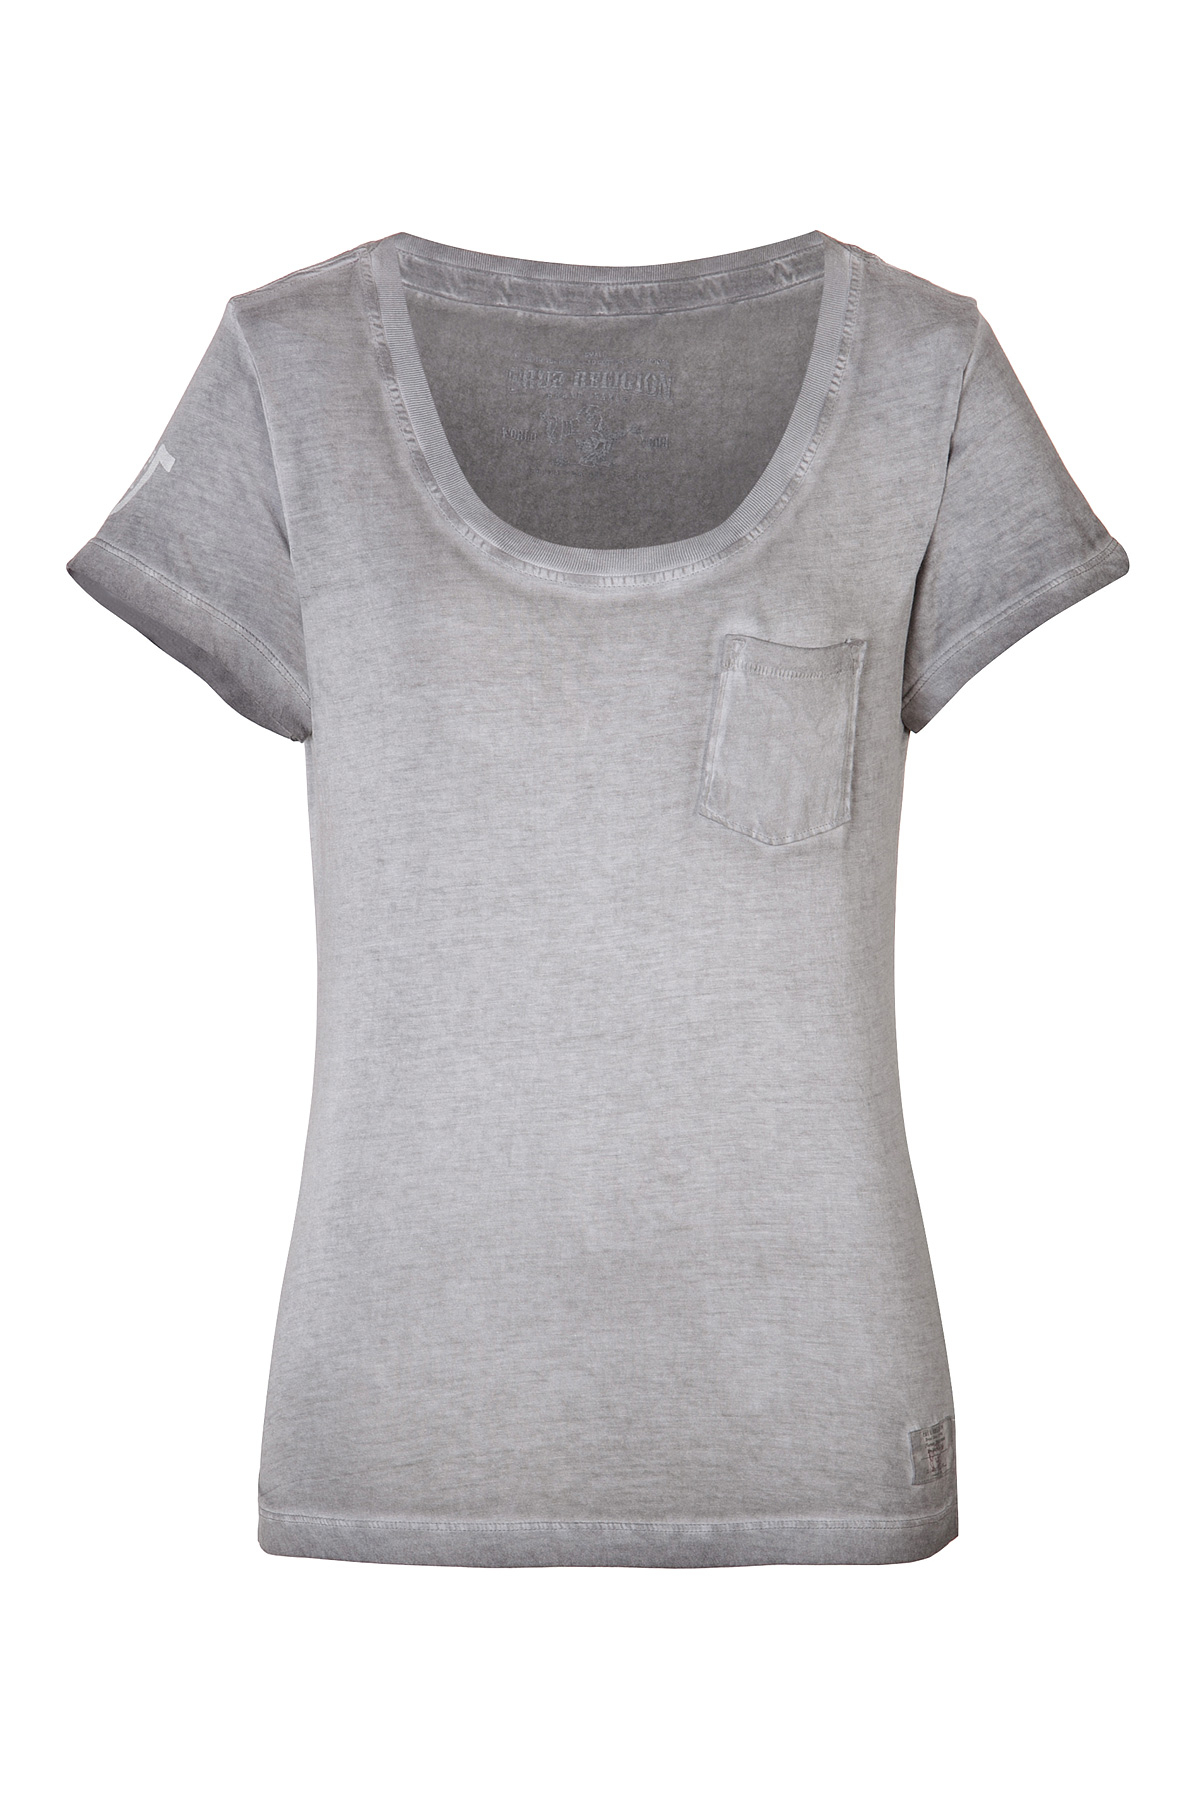 True religion cotton jersey faded t shirt in gray lyst for Faded color t shirts